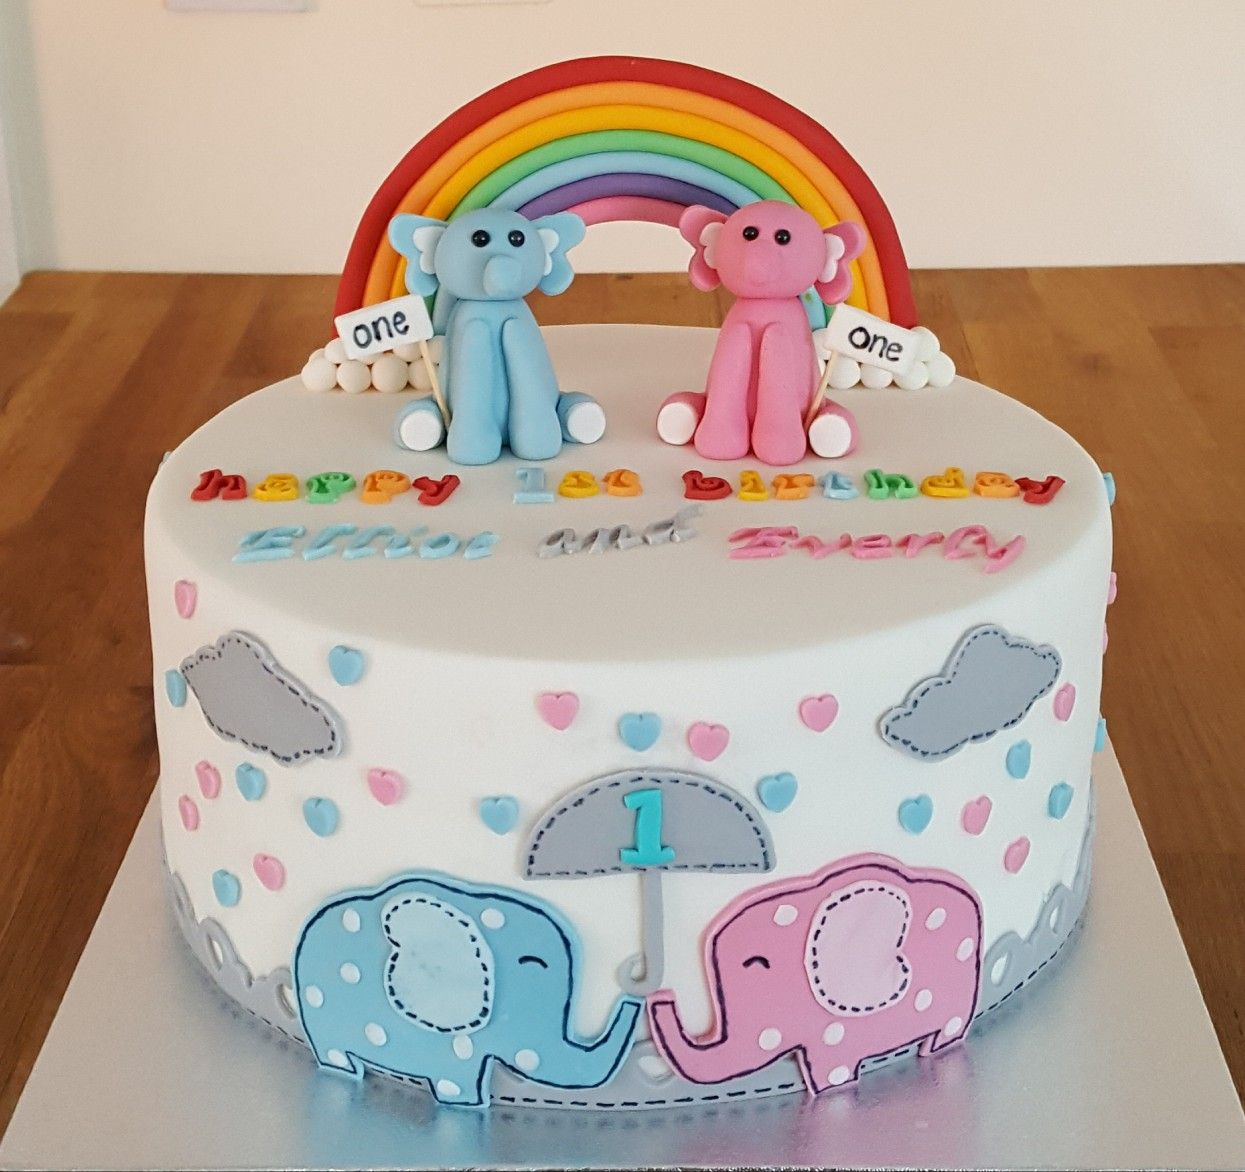 1st Birthday Cake For Twins Boy Amp Girl With Elephant